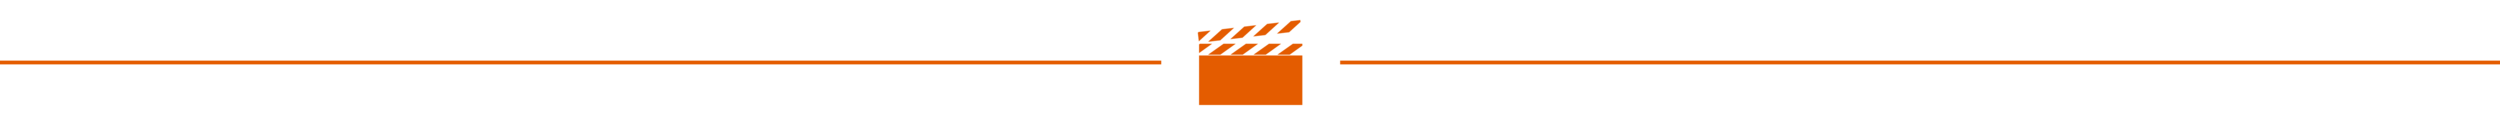 Clapper-Icon-Long-4x.png